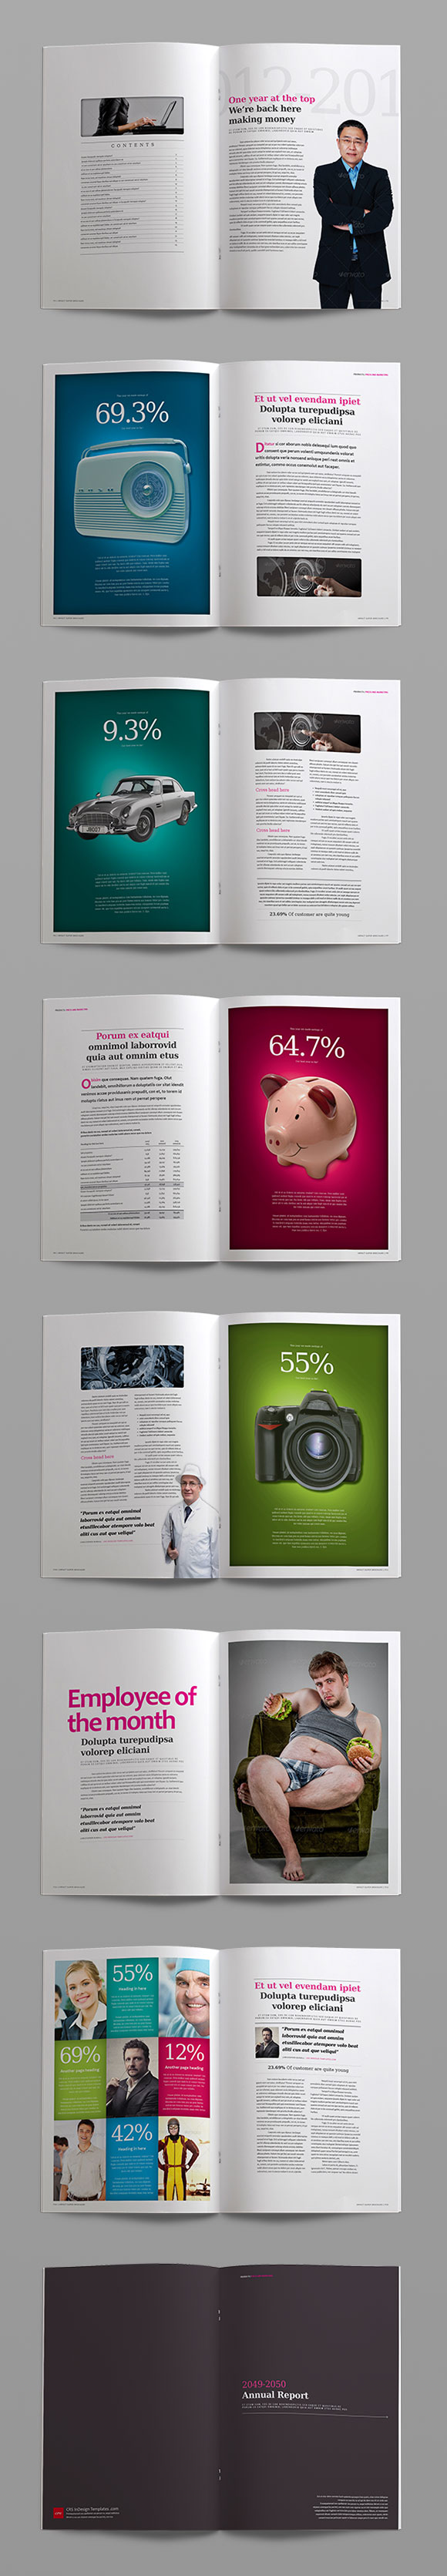 InDesign impact anual report template page preview